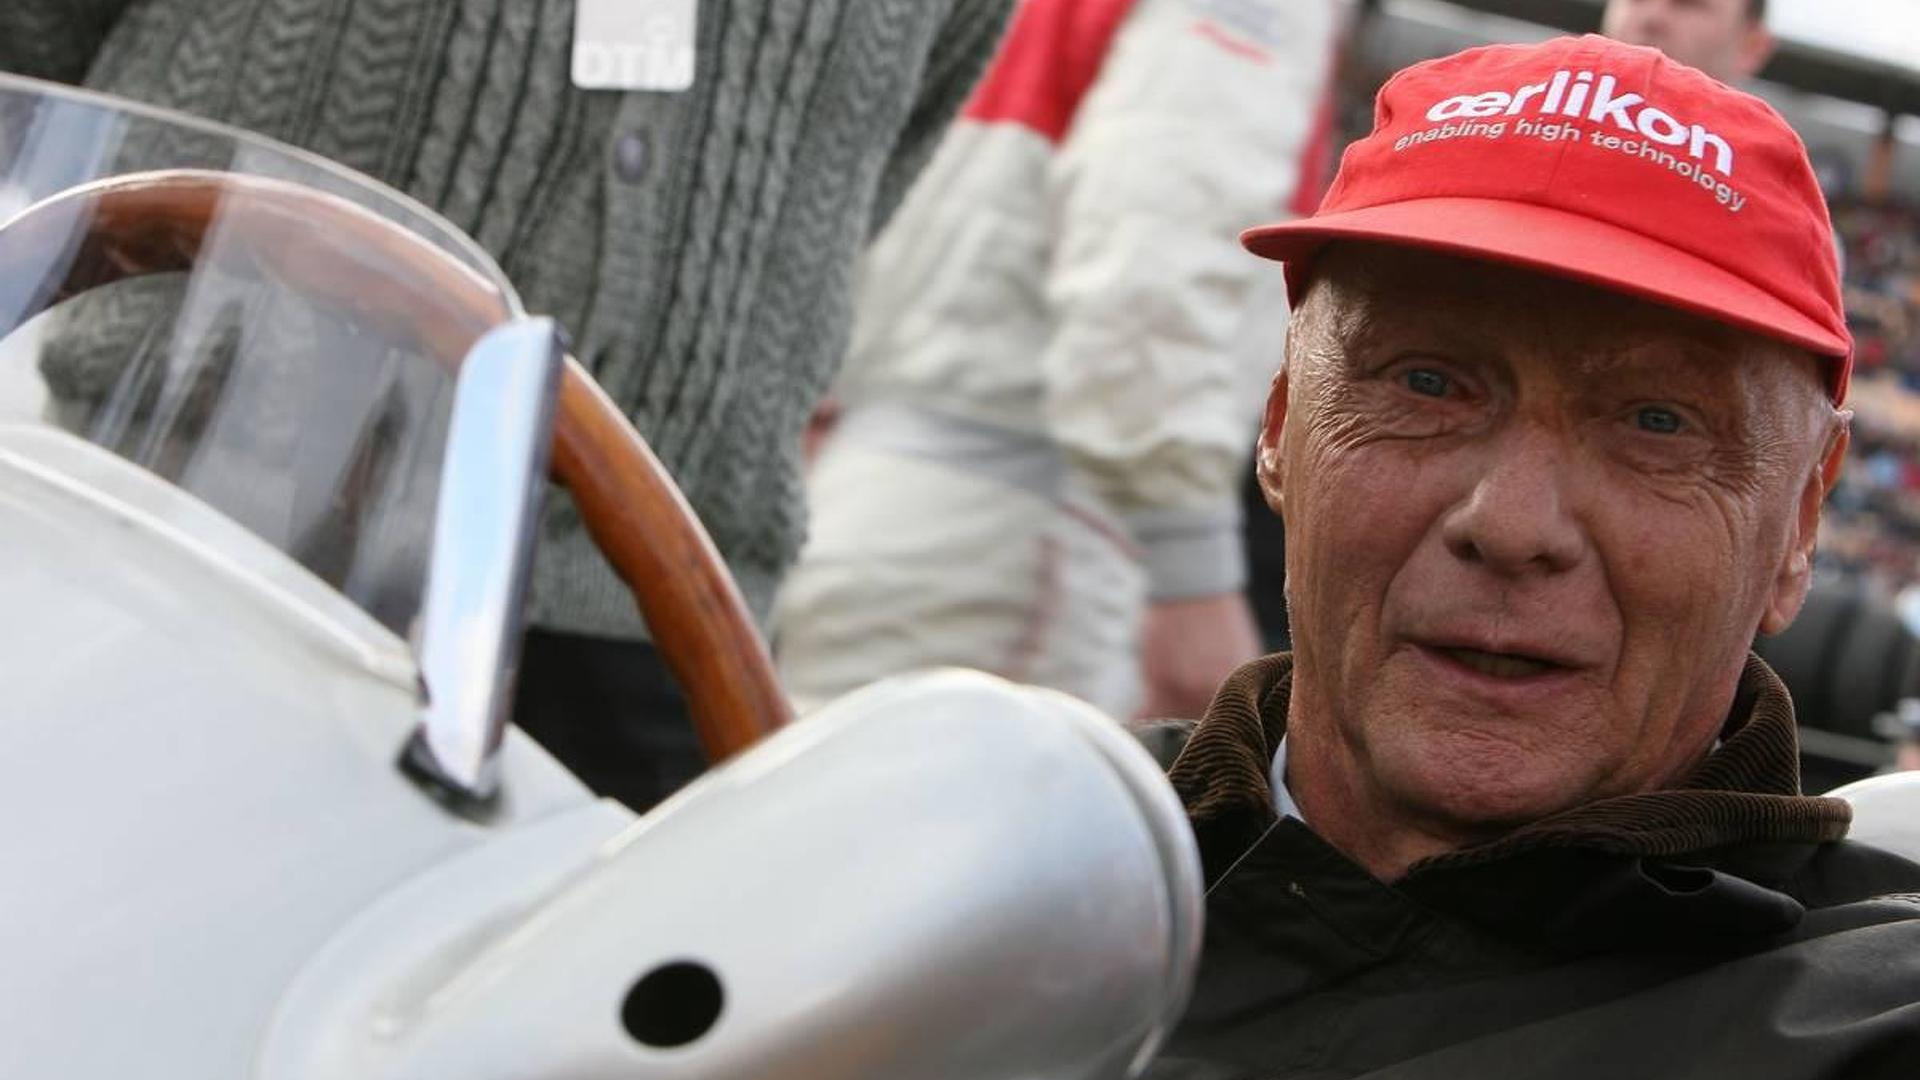 Lauda worried about sound of 2013 engines